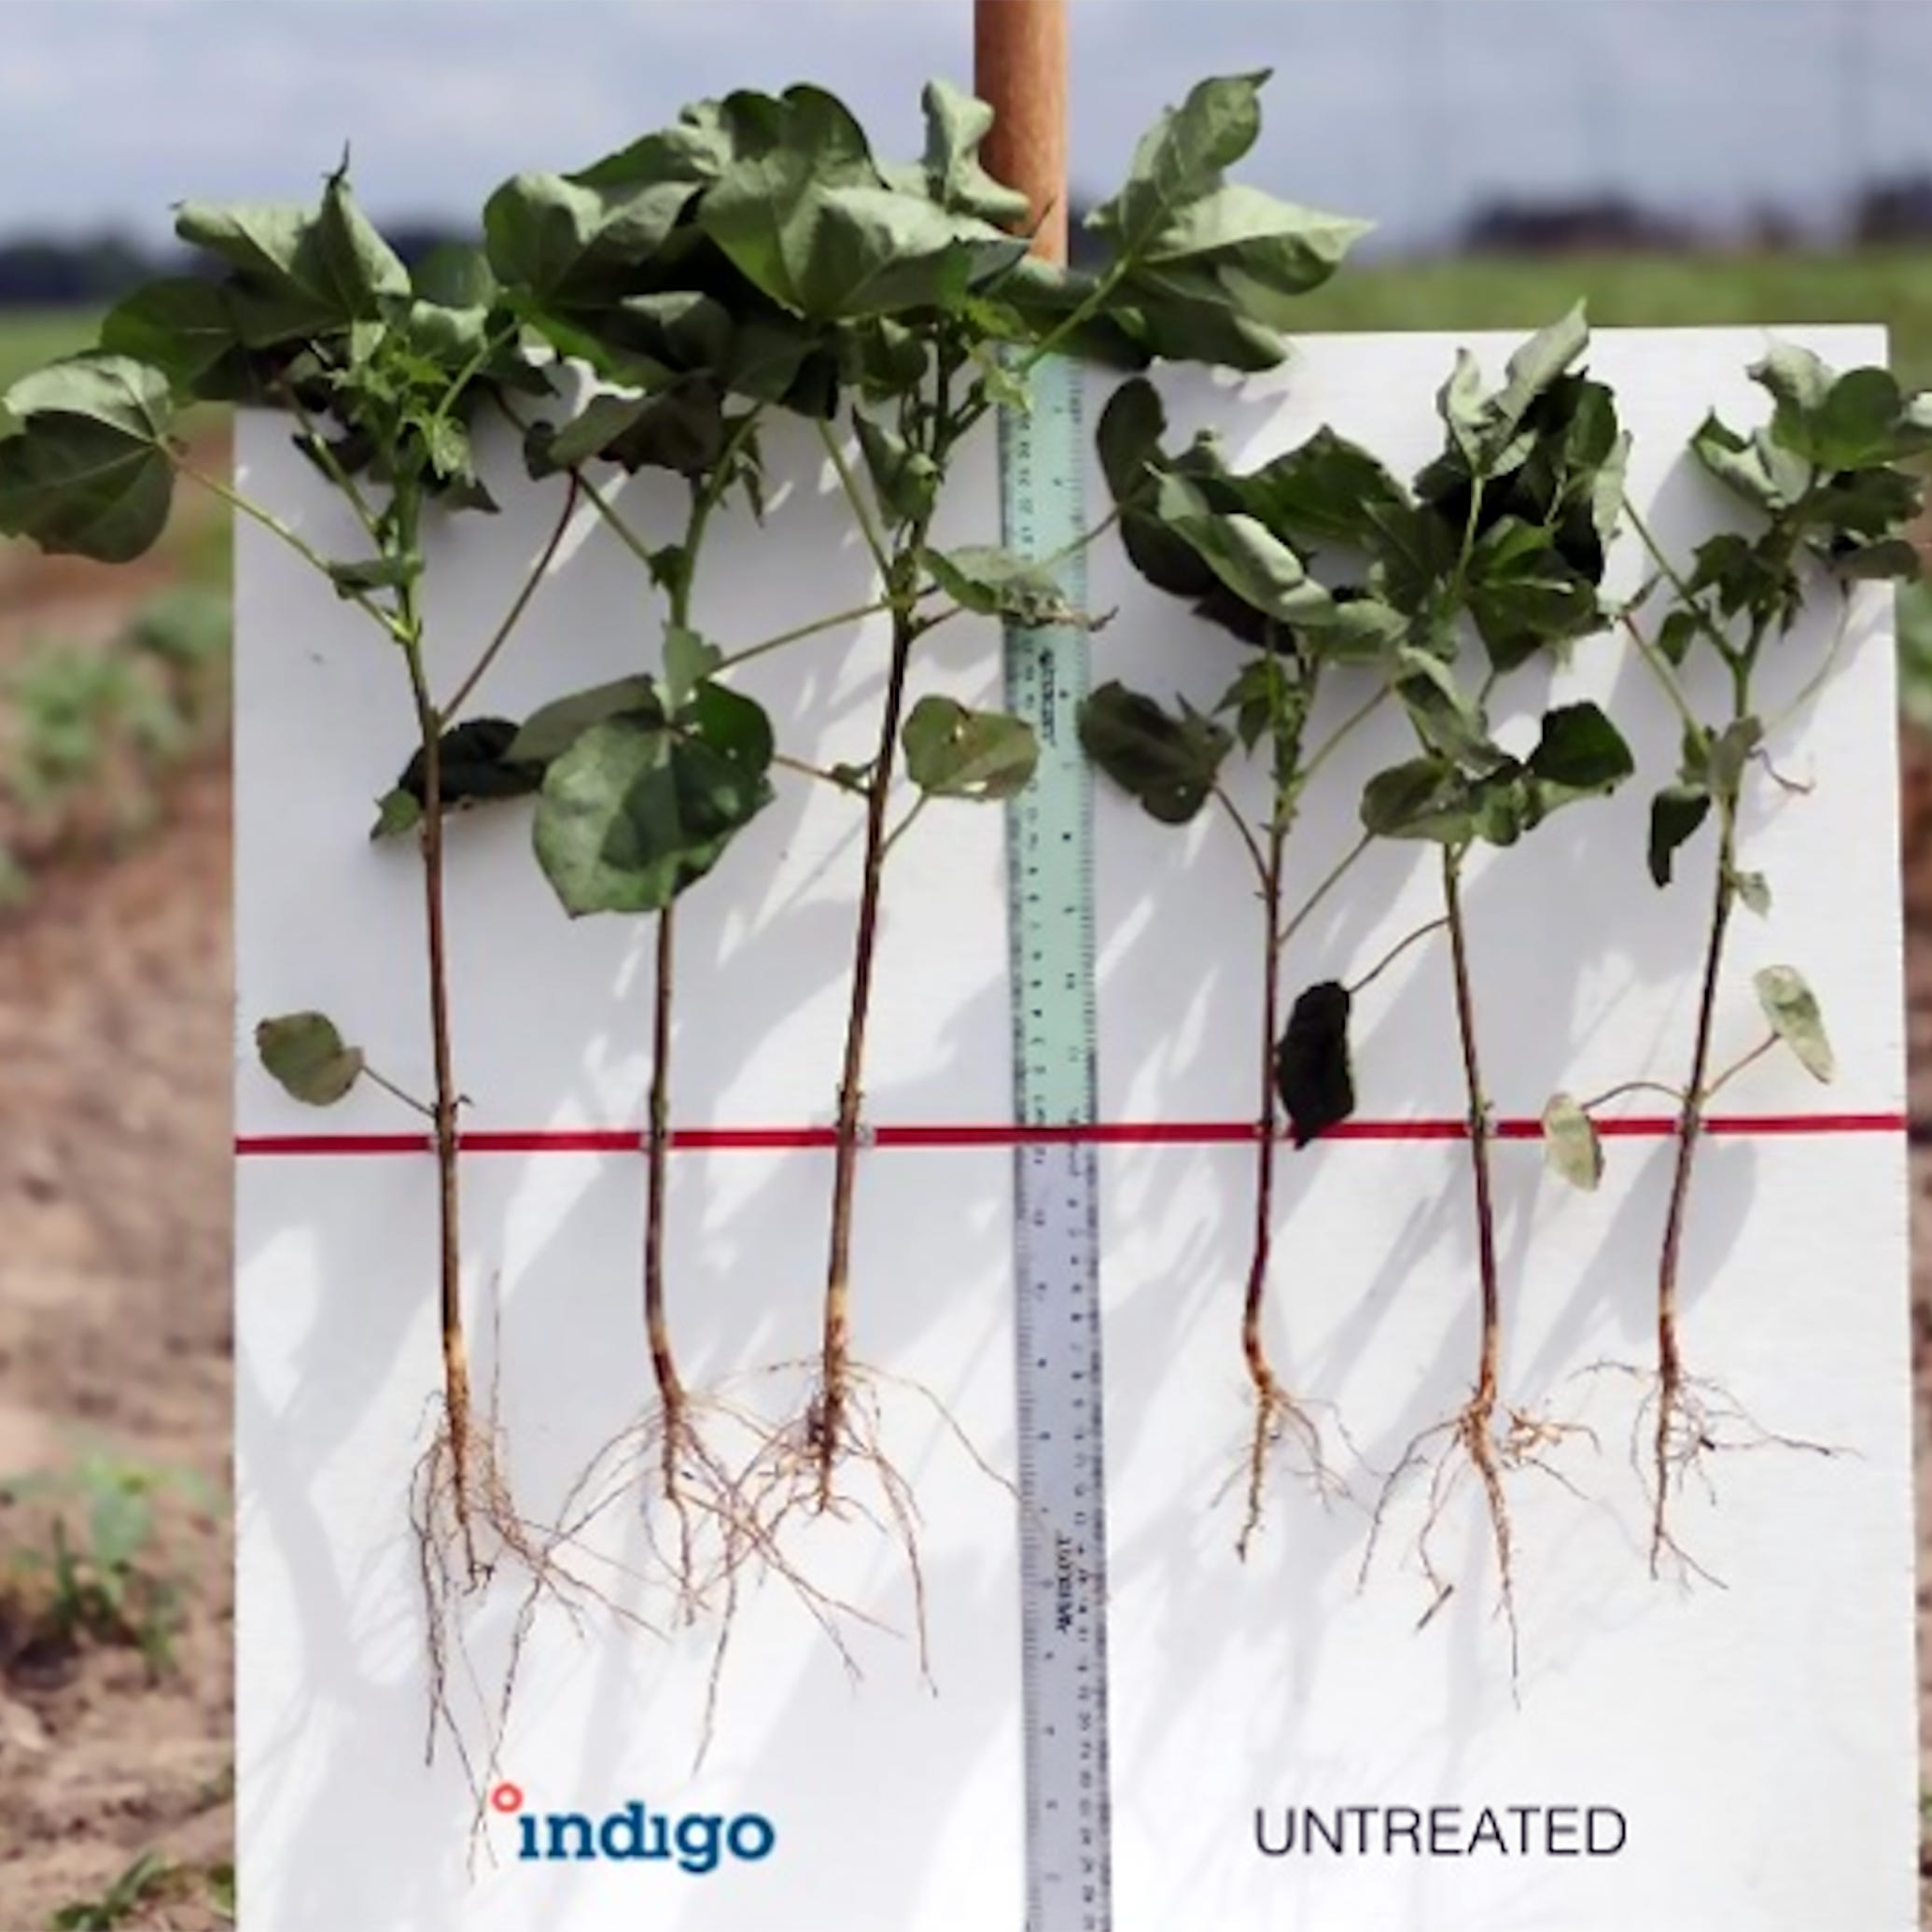 With technology and transparency, Indigo Ag seeks to disrupt the agriculture industry